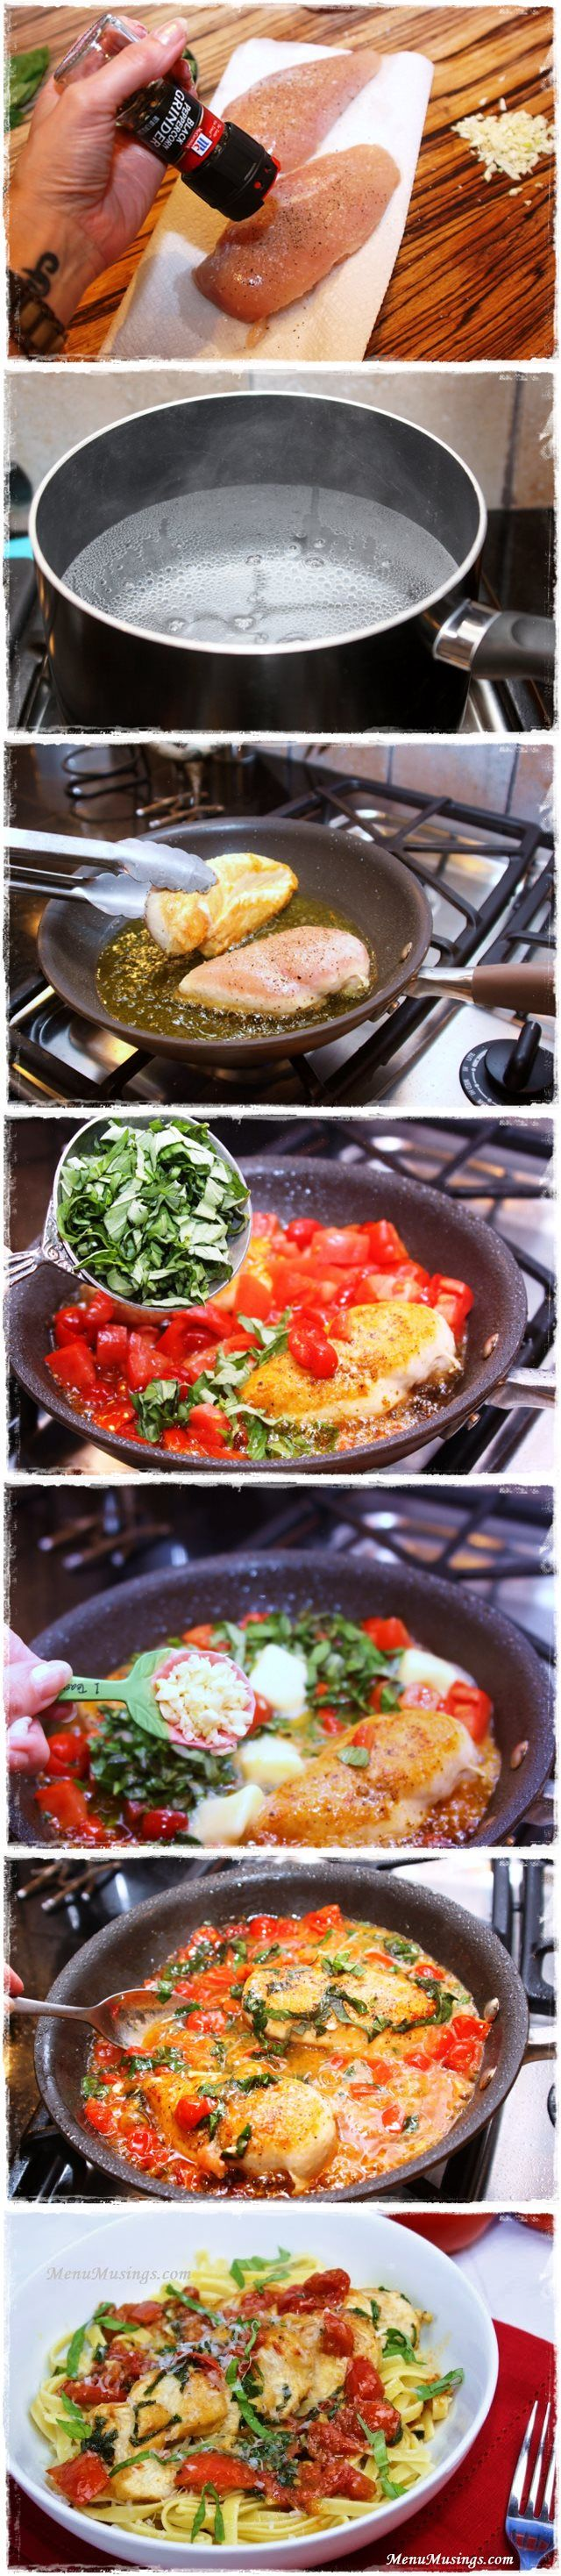 Tomato Basil Chicken.. I just made this now for lunch, hubs liked it. I also used low carb pasta it was delicious.